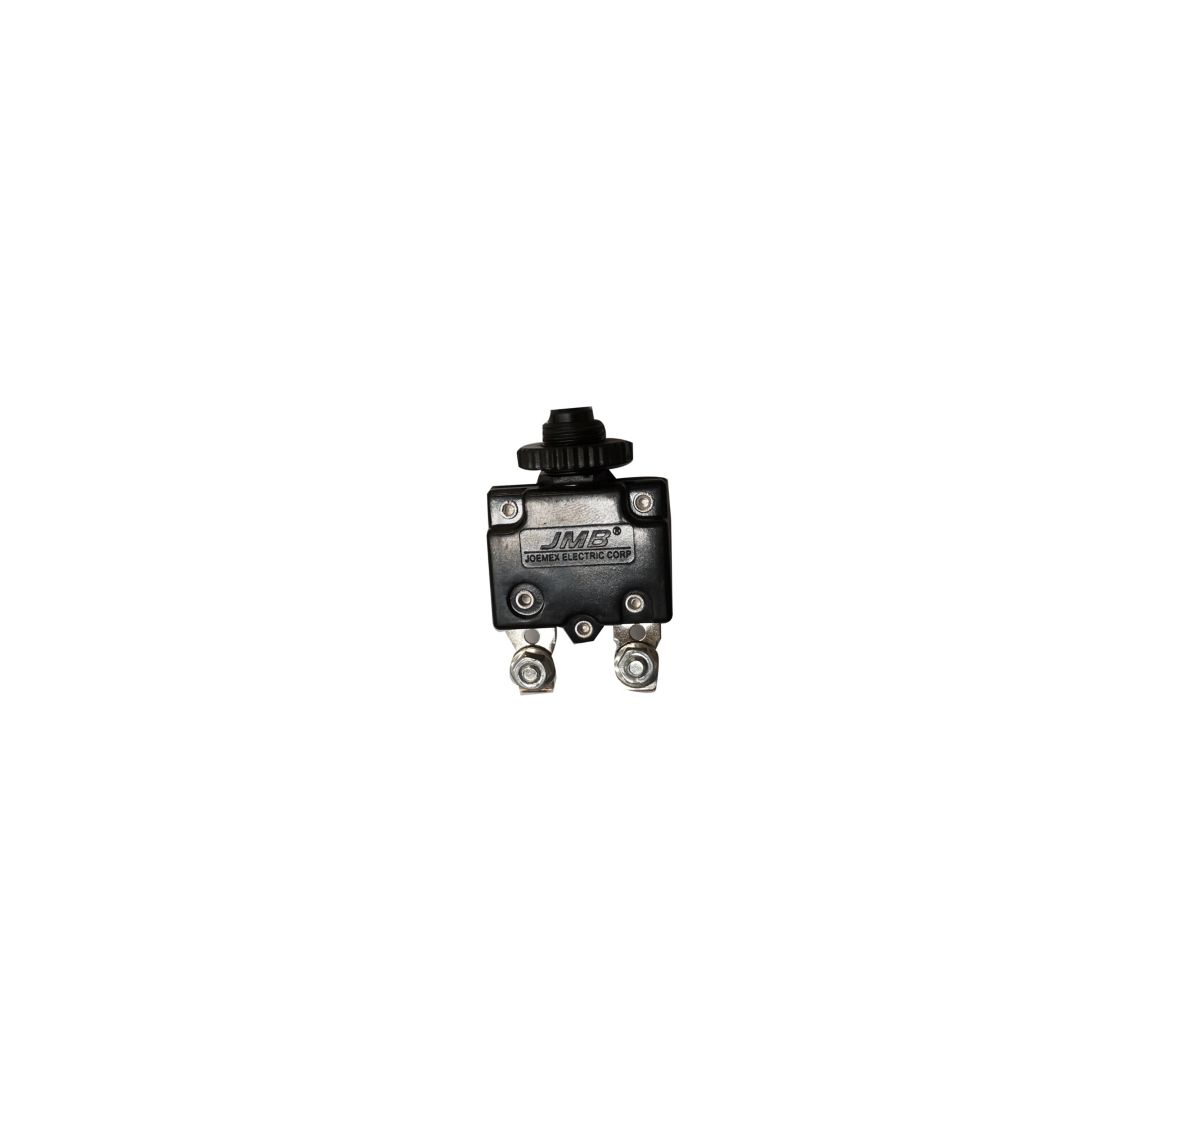 Image for 10A Circuit Breaker from Omni US Store